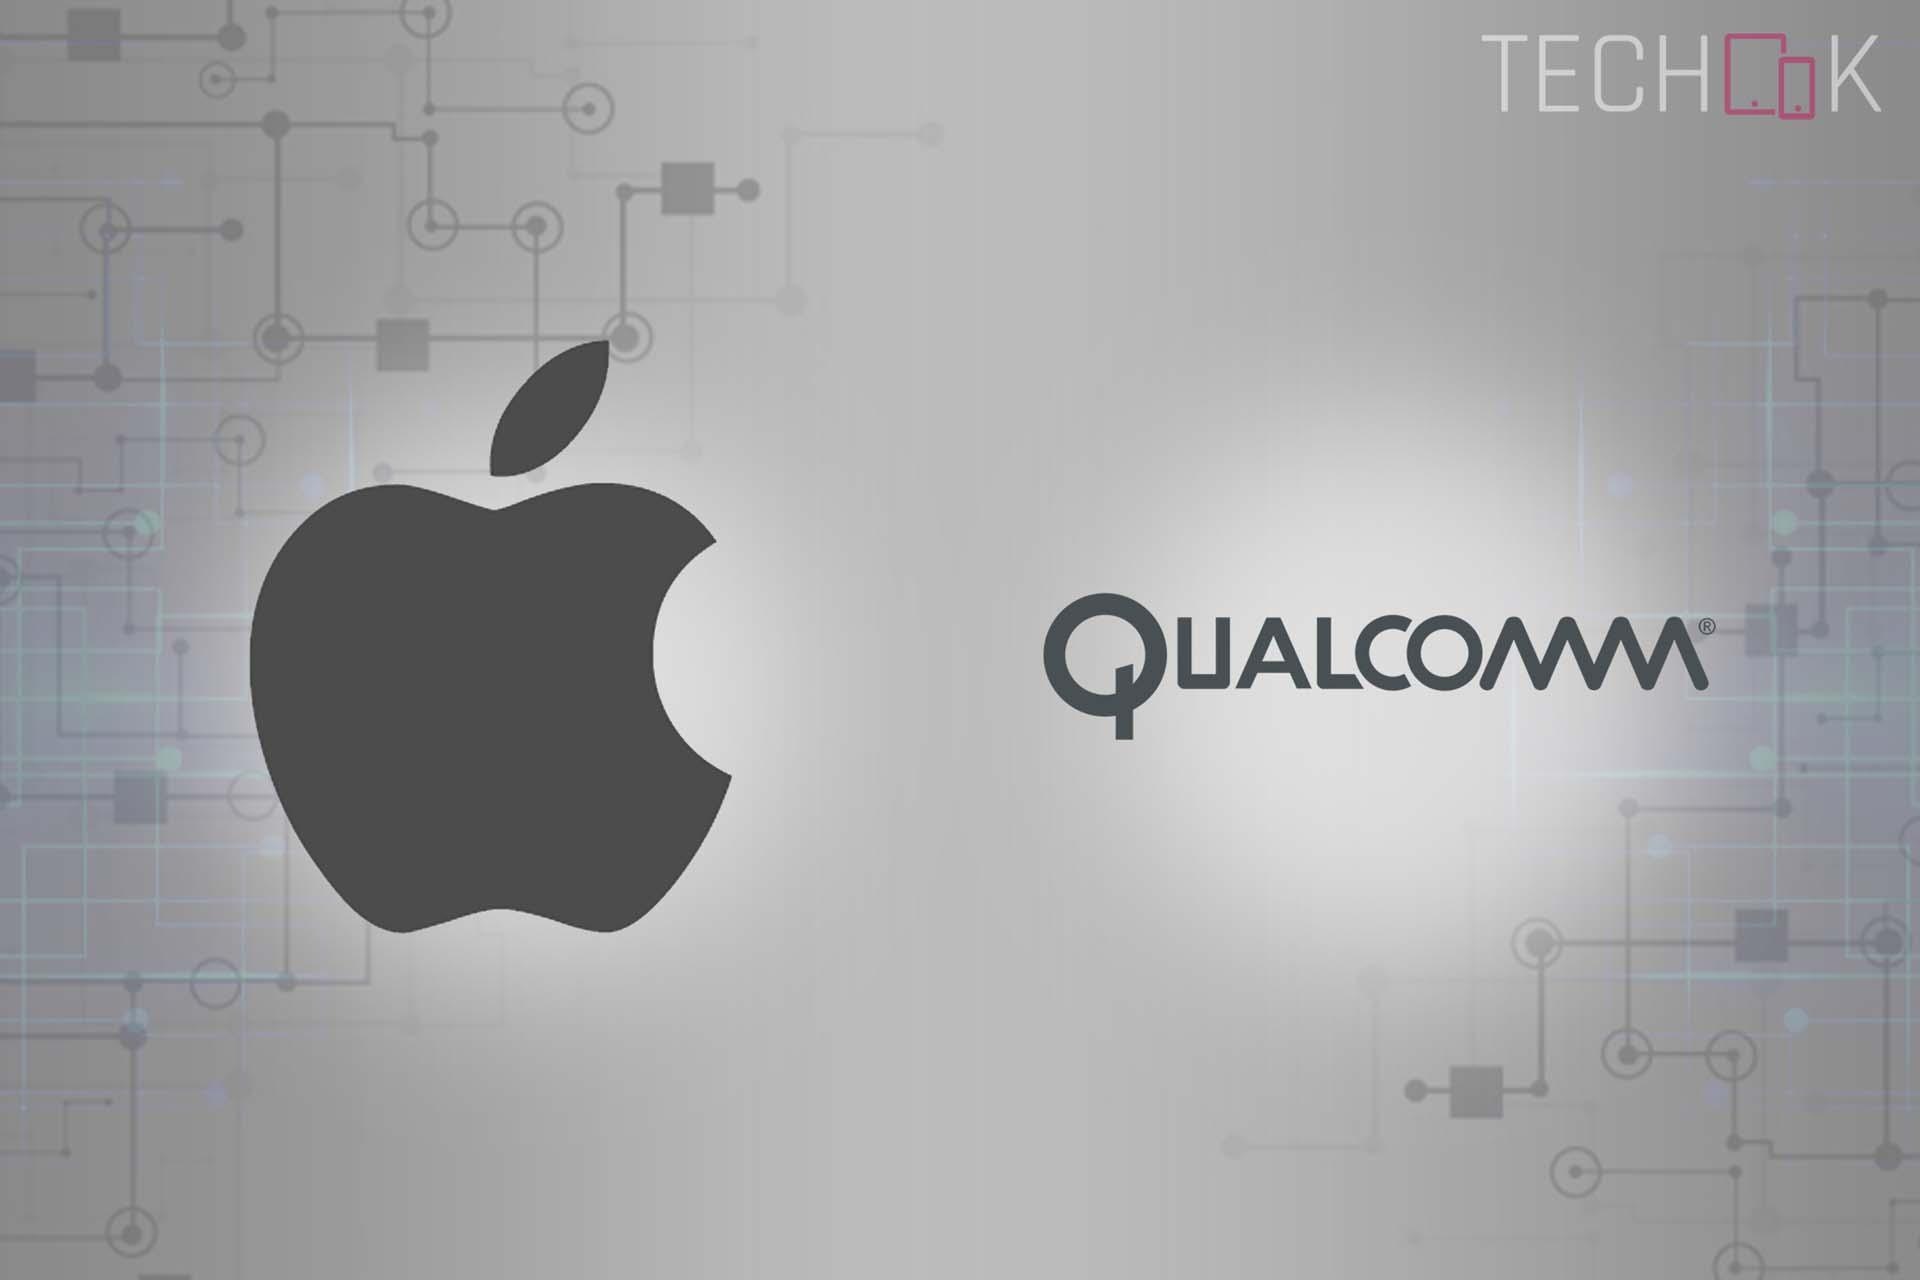 Qualcomm trumps Intel in iPhone X modem speed tests